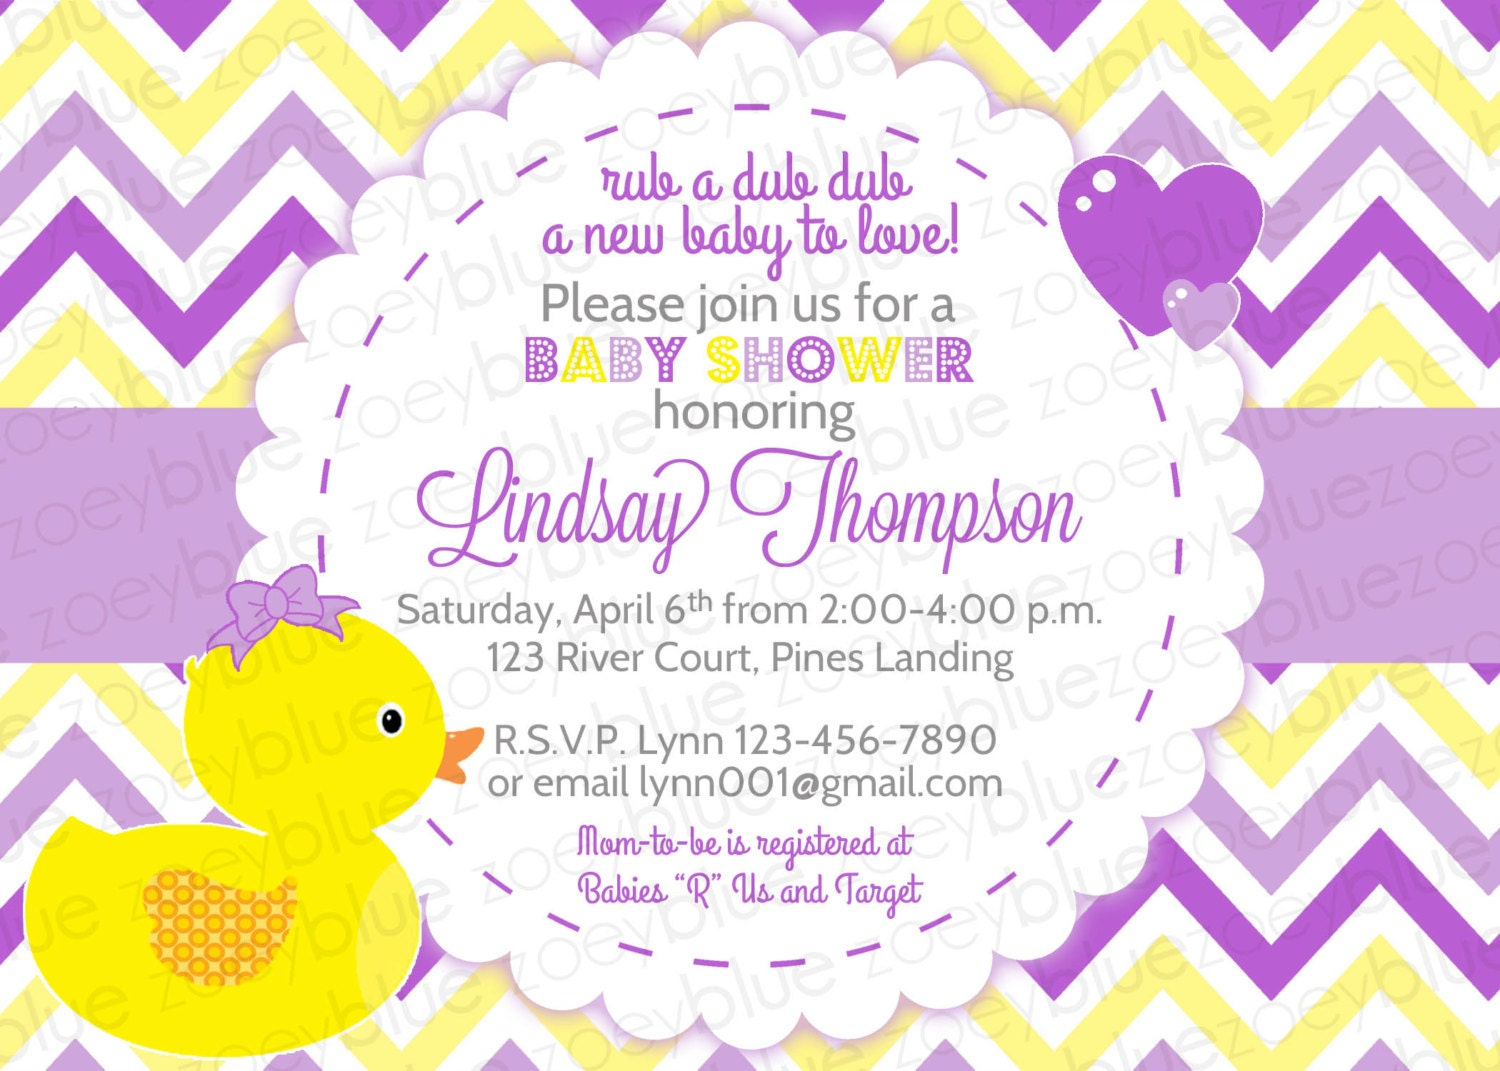 Snap Rubber Ducky Twins Baby Shower Invitation Boy Girl Bow Bowtie ...